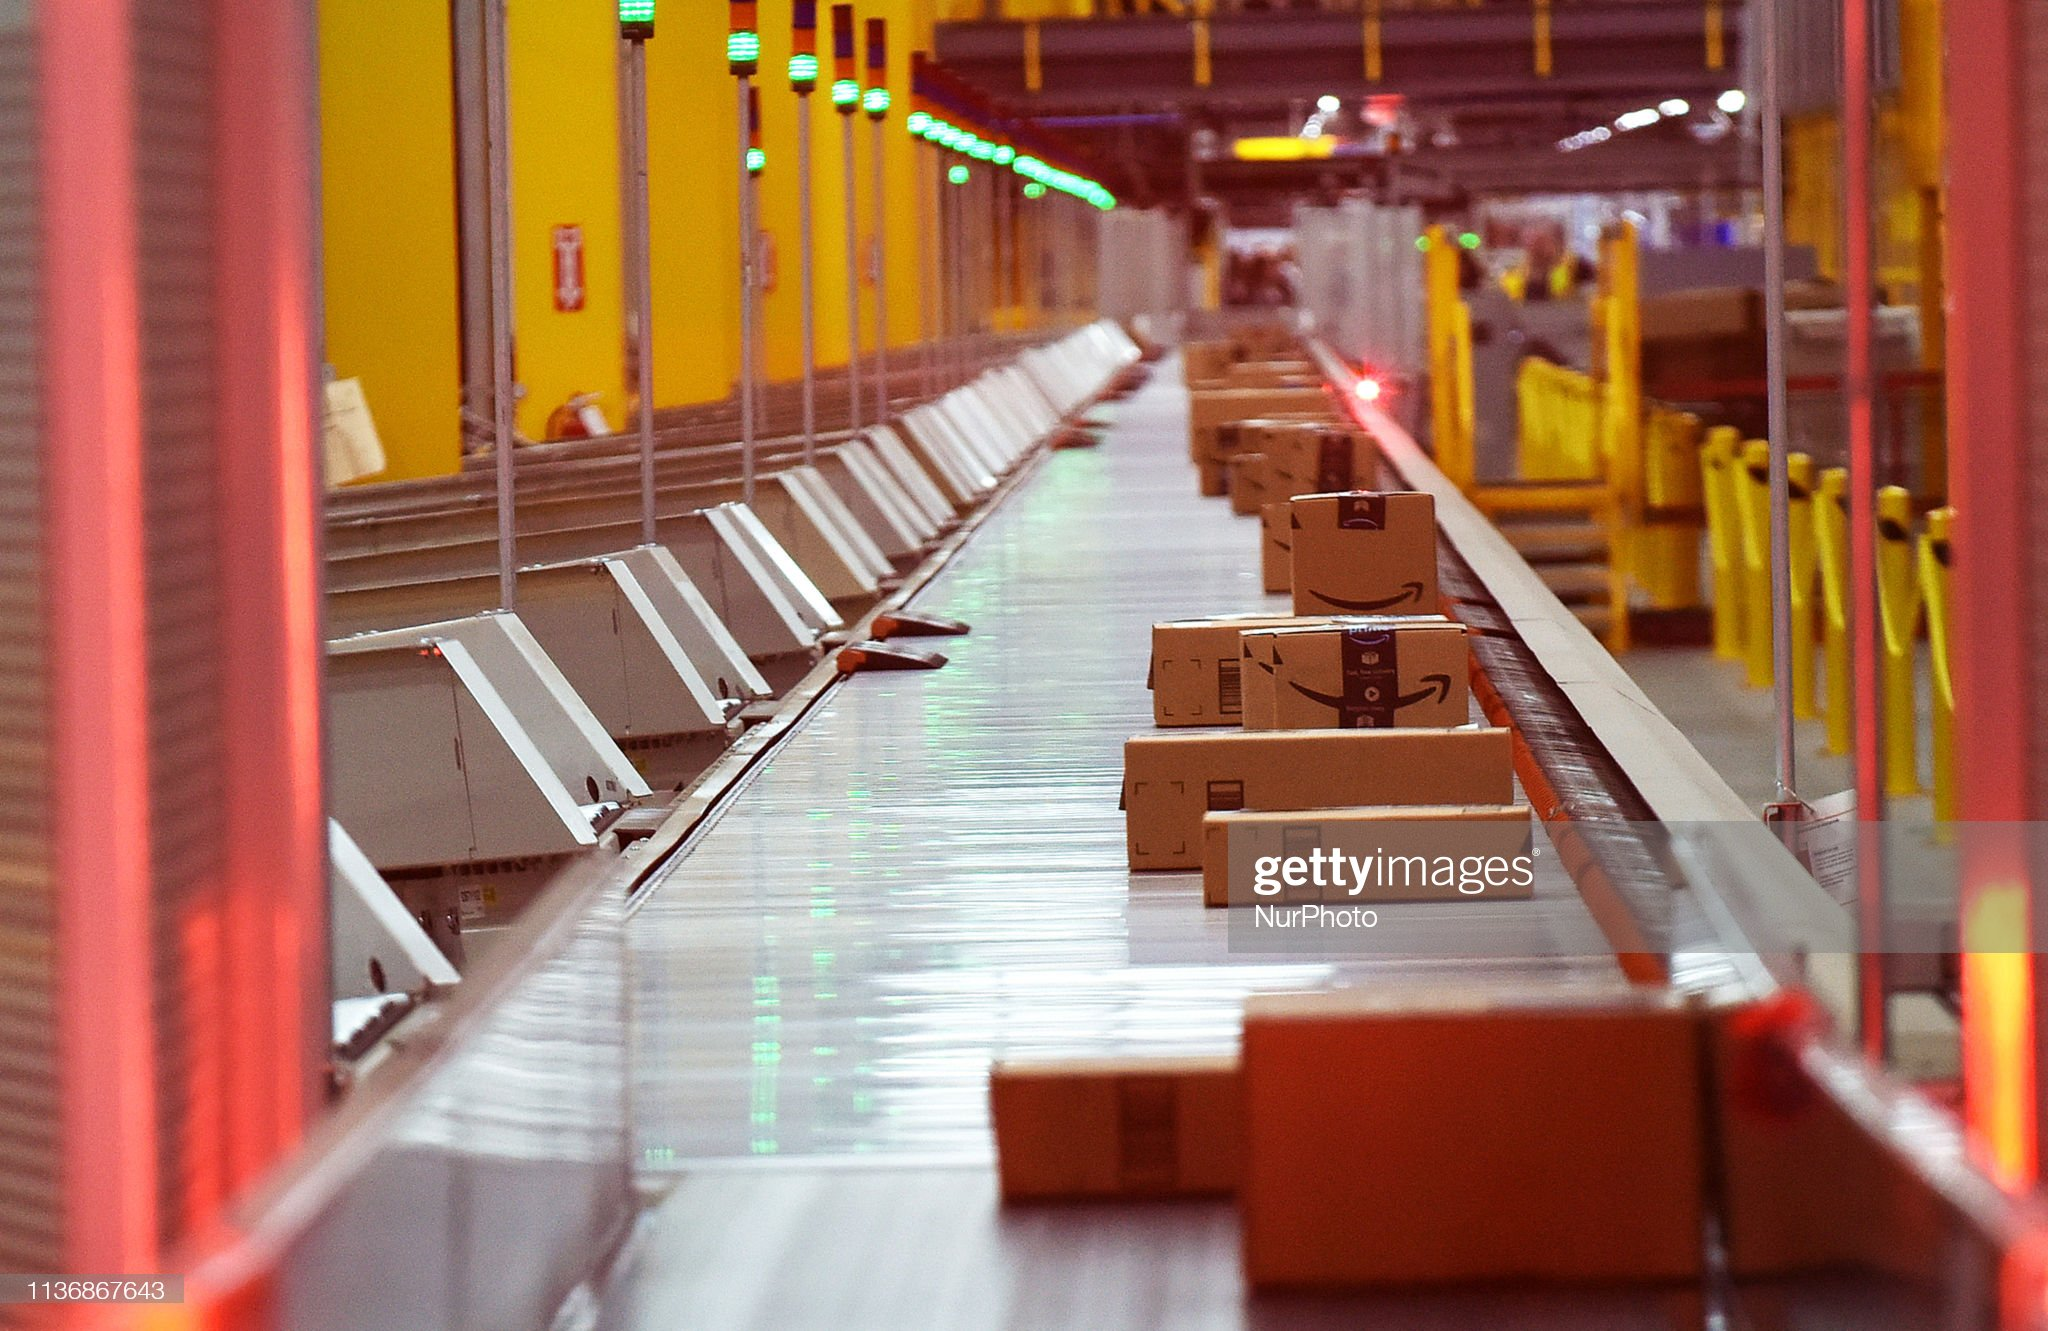 Amazon's Newest Robotics Fulfillment Center Holds Grand Opening In Orlando : News Photo